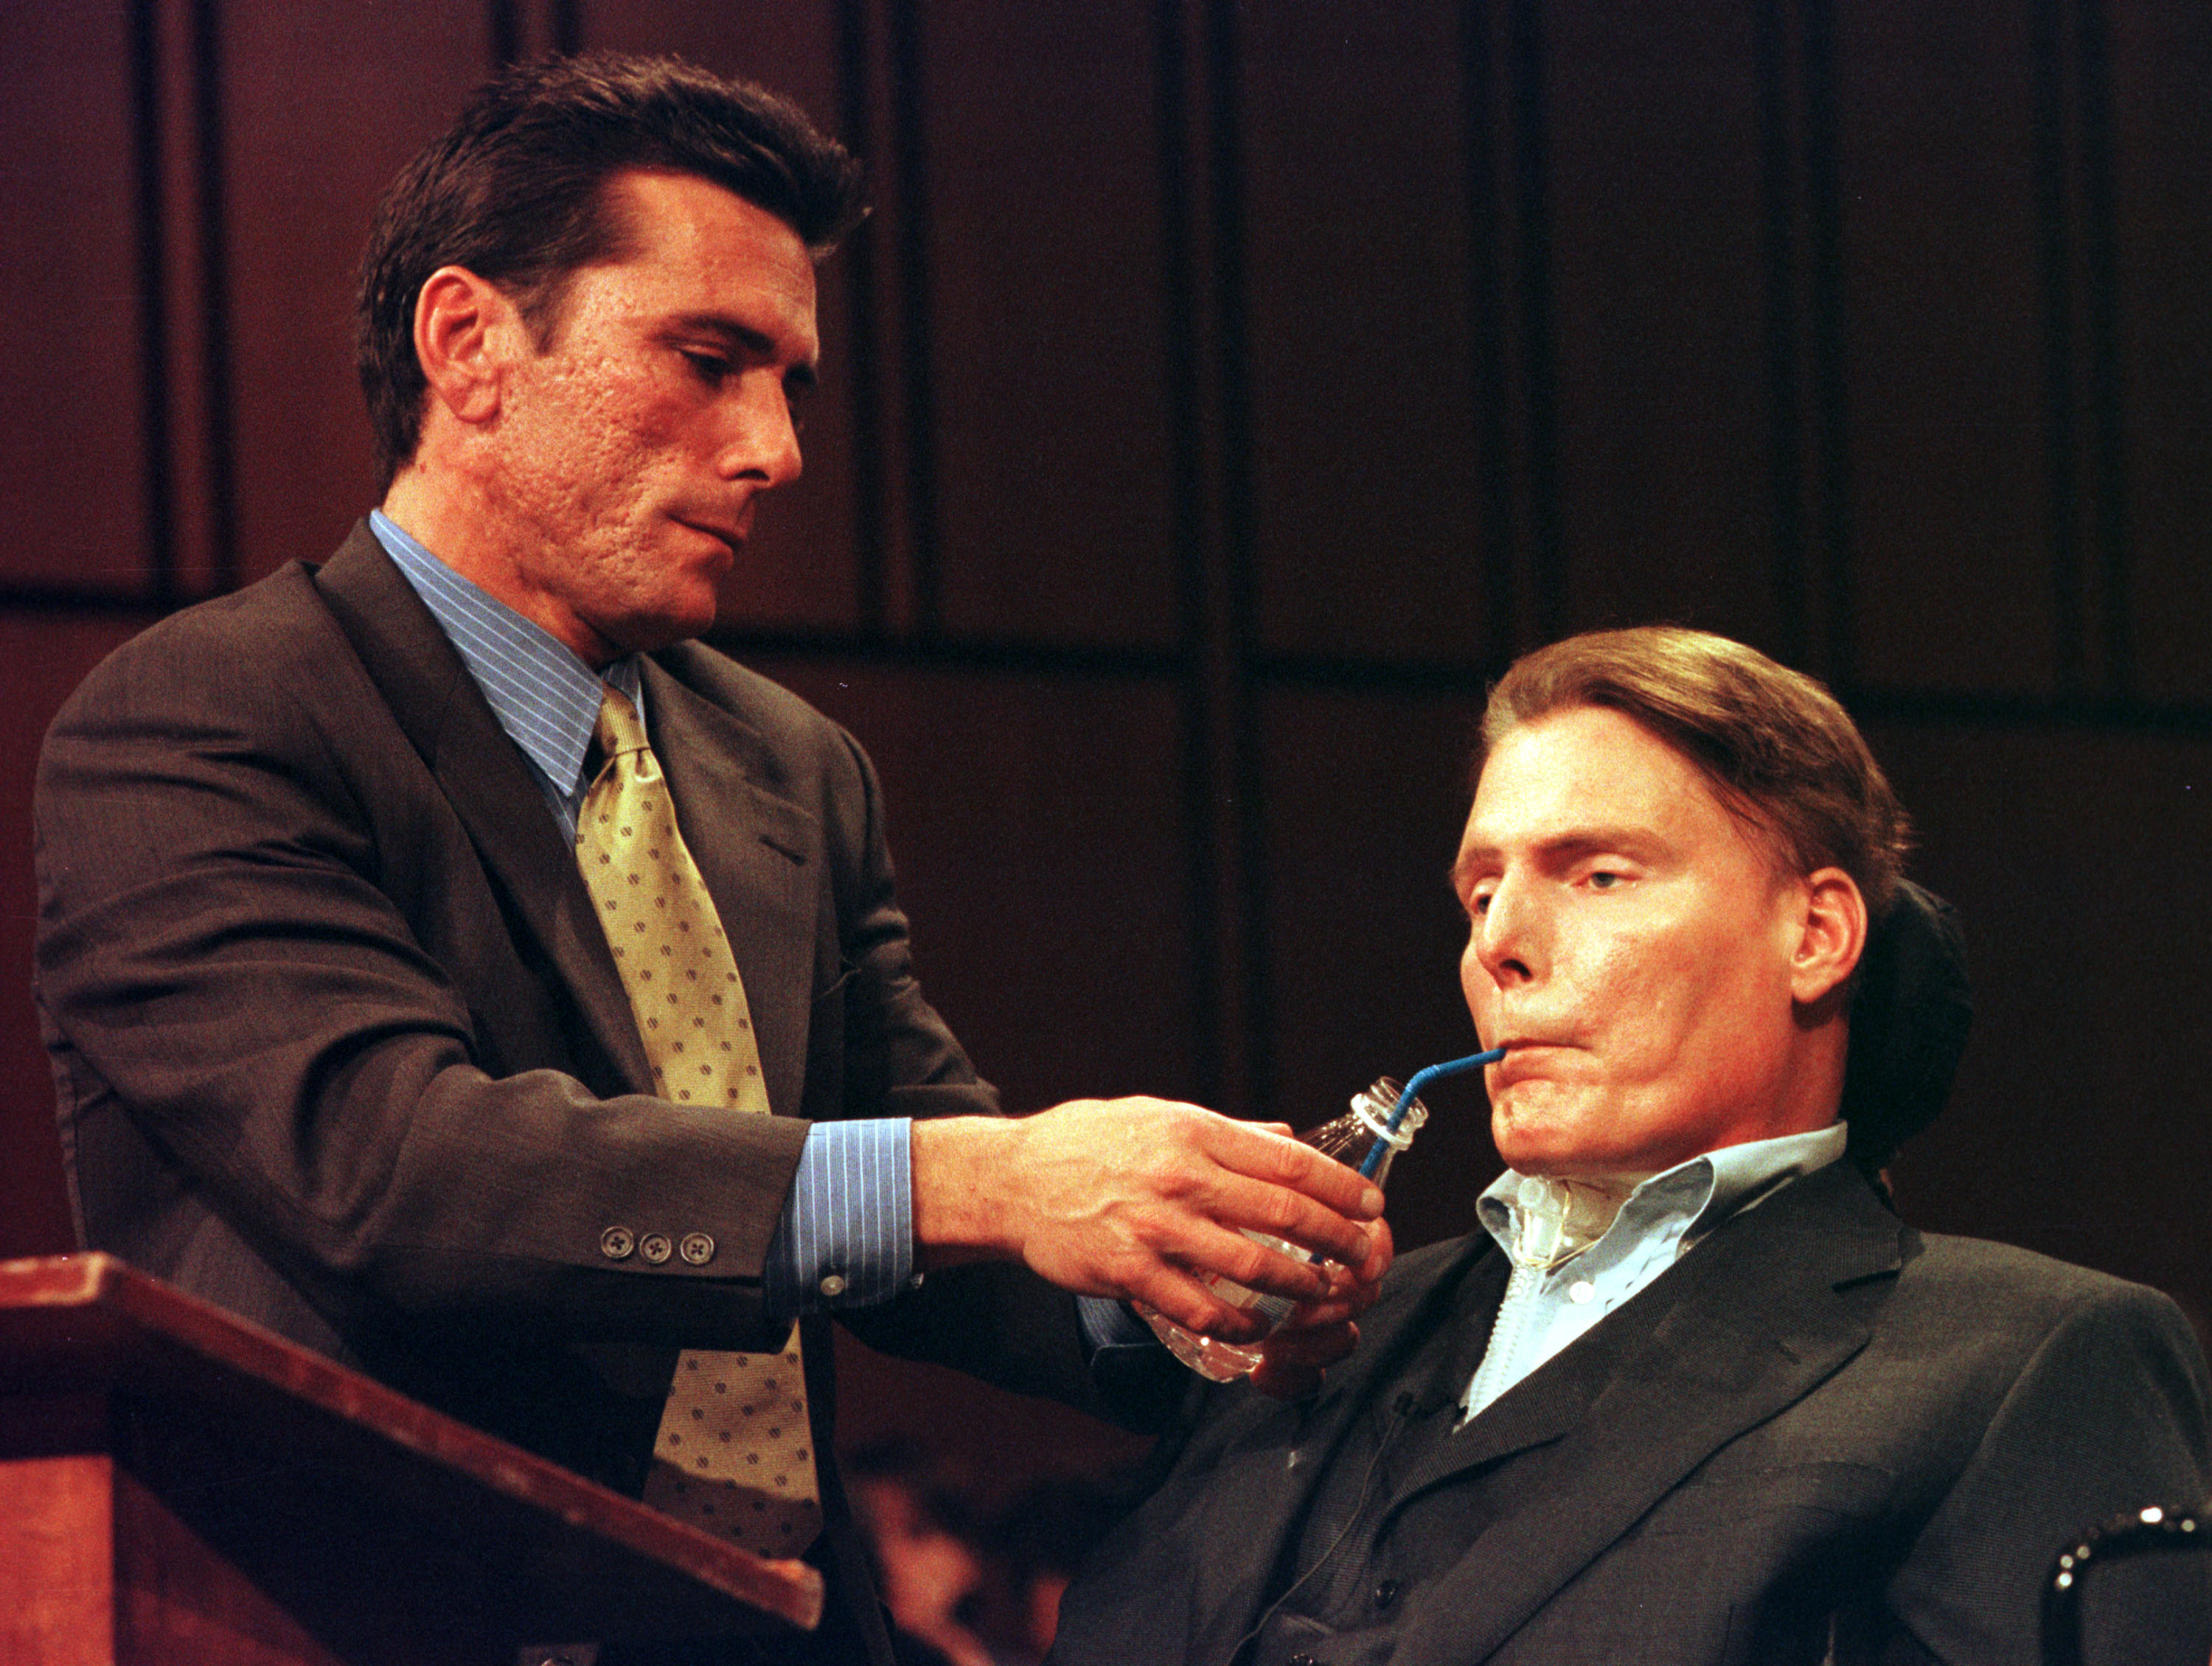 Actor Christopher Reeve is assisted as he testifies during a hearing on stem cell research April 26, 2000, on Capitol Hill in Washington, DC. (Getty)